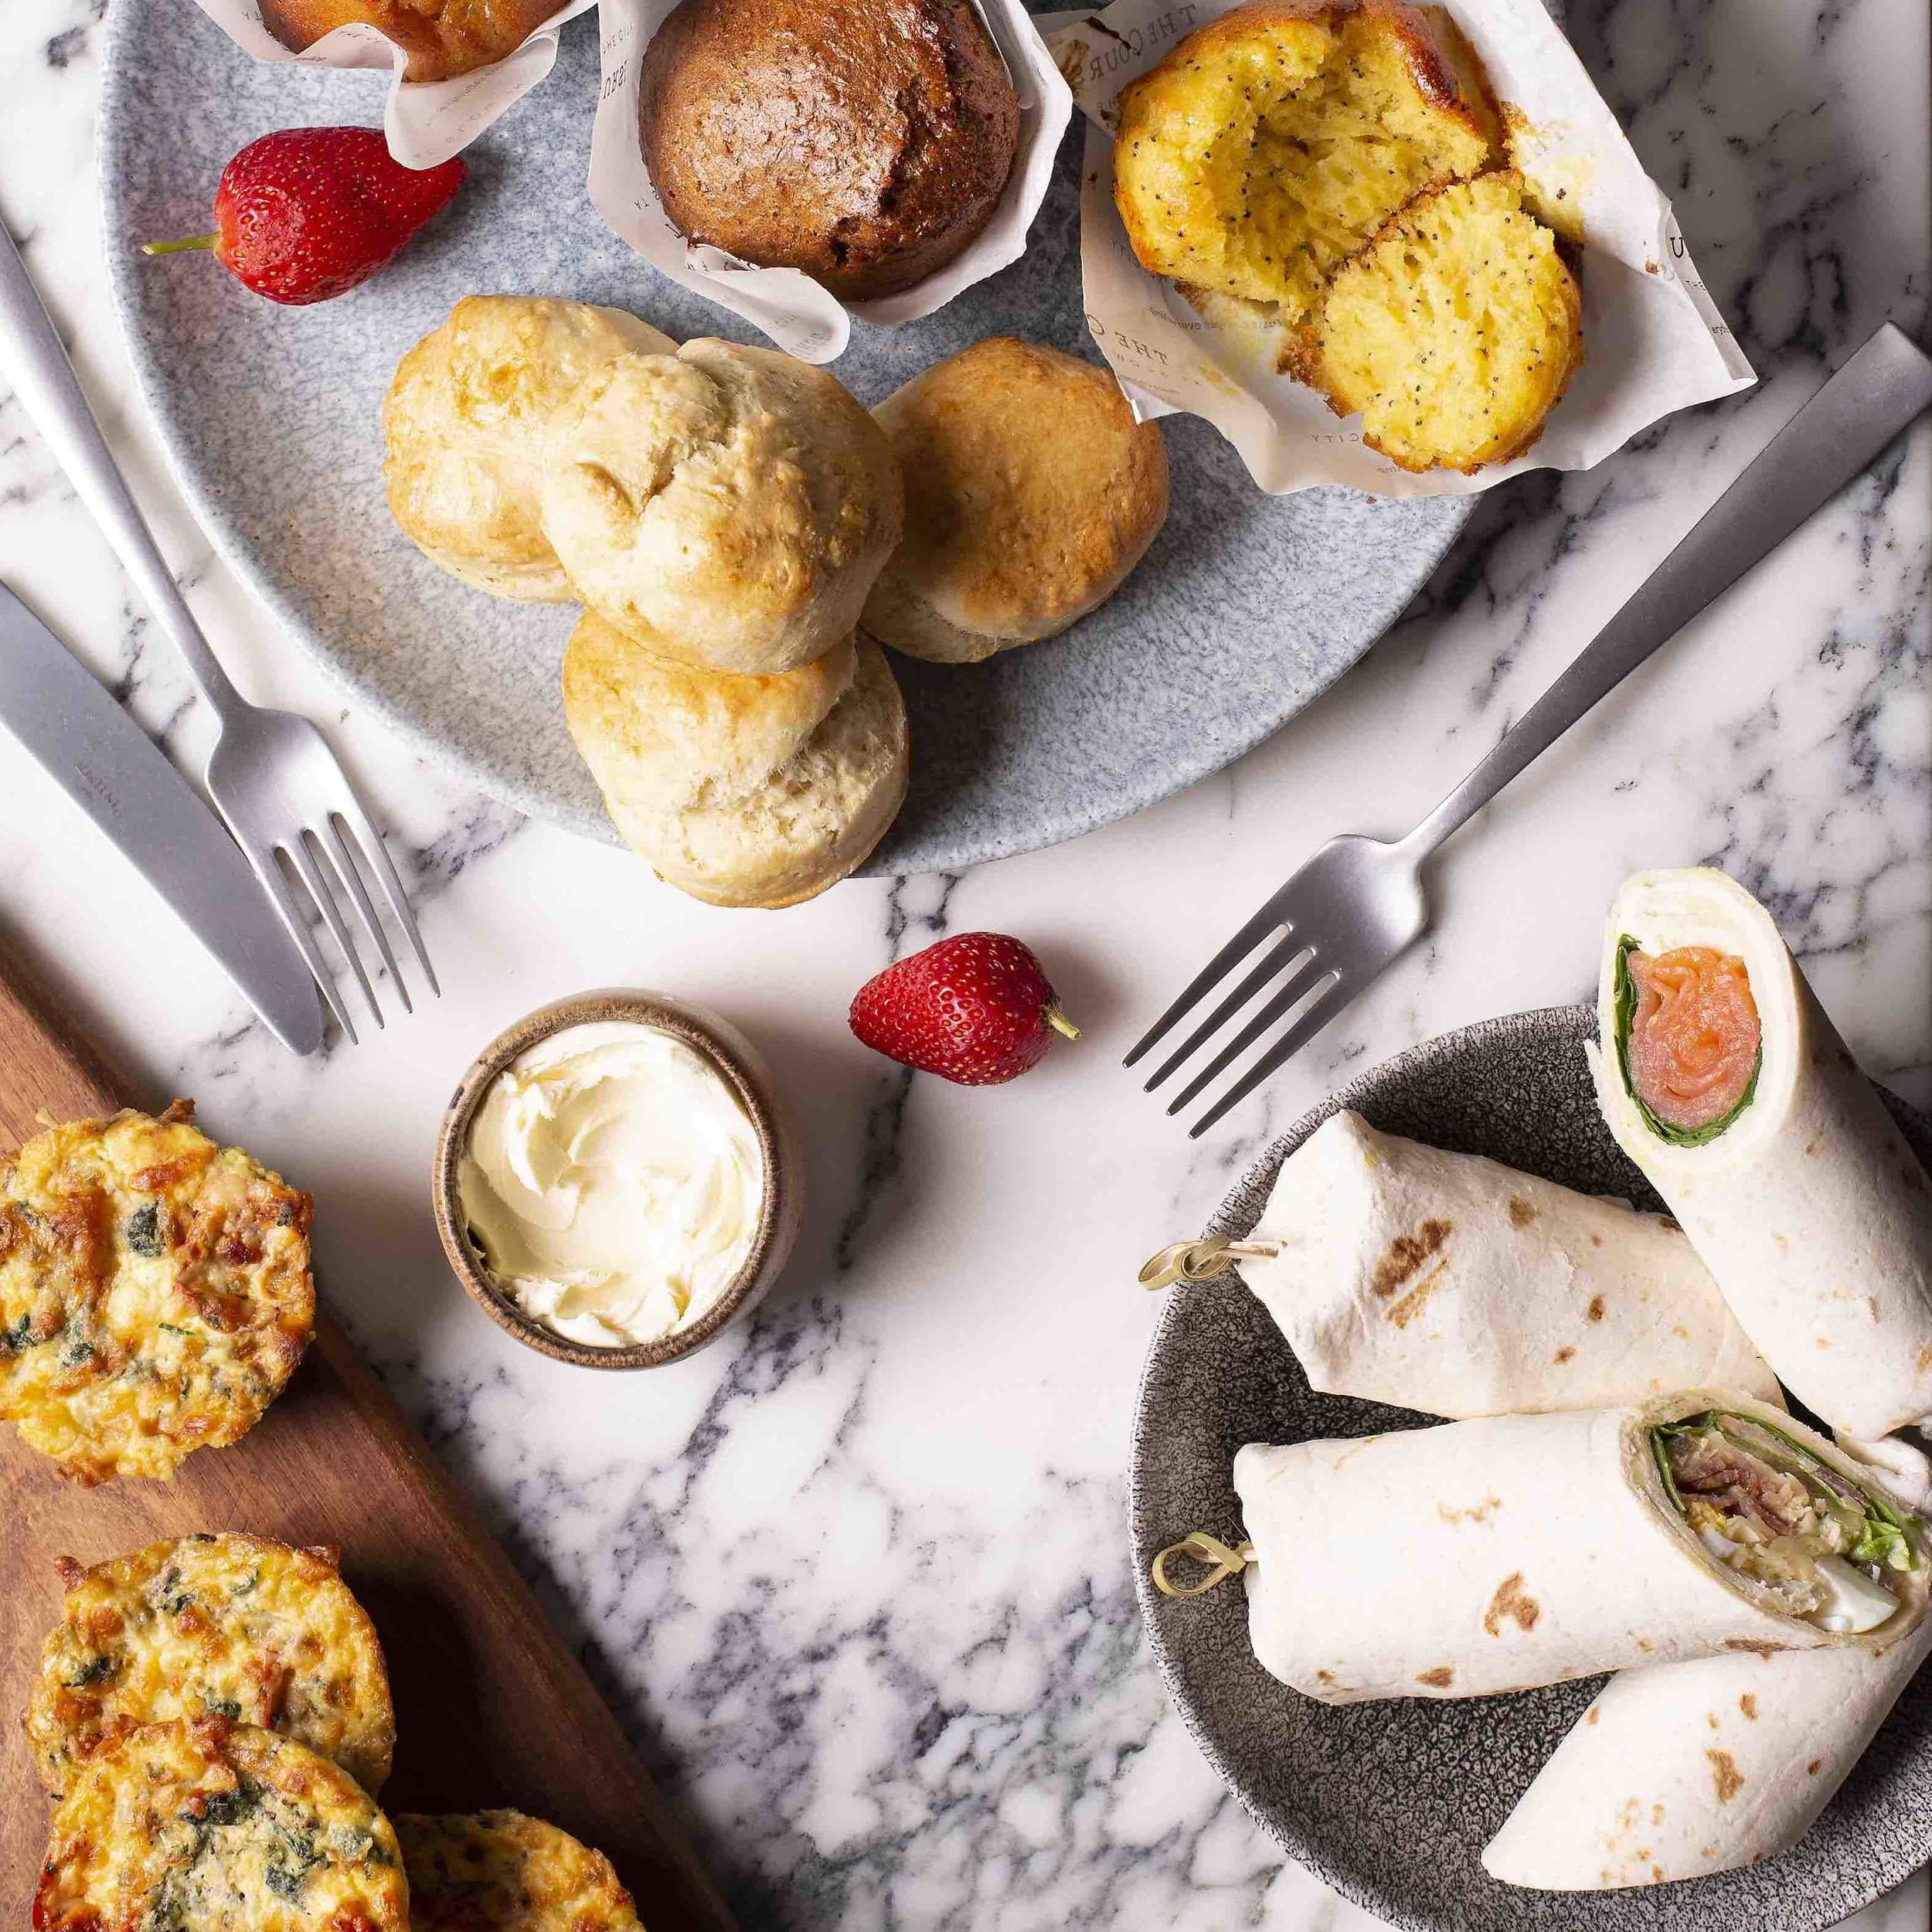 Breakfast platterR 600– - Spinach, mushroom and roasted rosa tomato frittata, breakfast wraps with boiled eggs, salmon and cream cheese wraps, assorted muffins, home-made scones